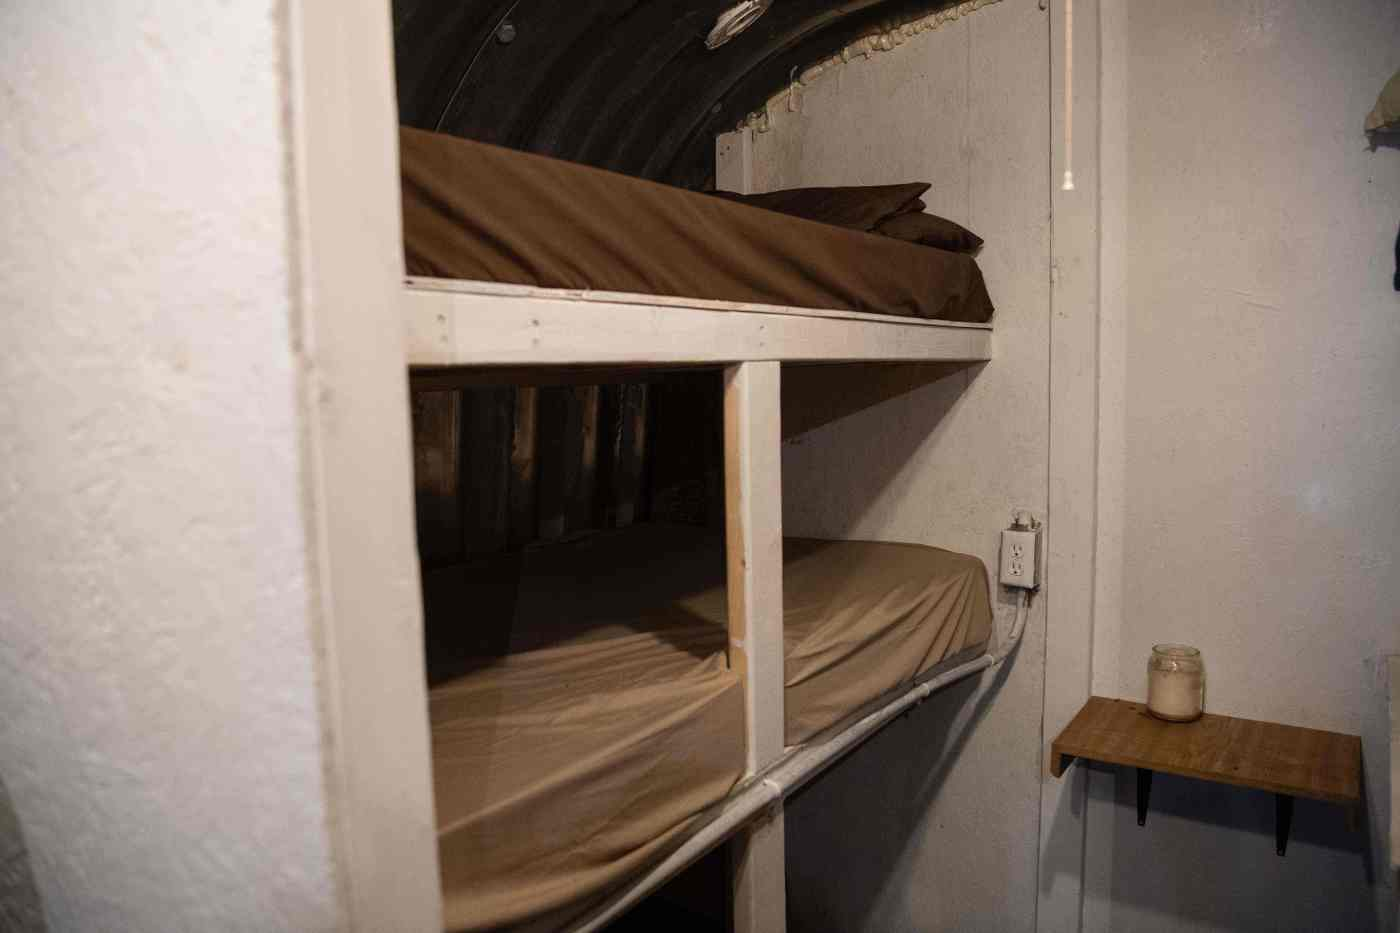 Bunk beds are seen inside a bunker at the Fortitude Ranch